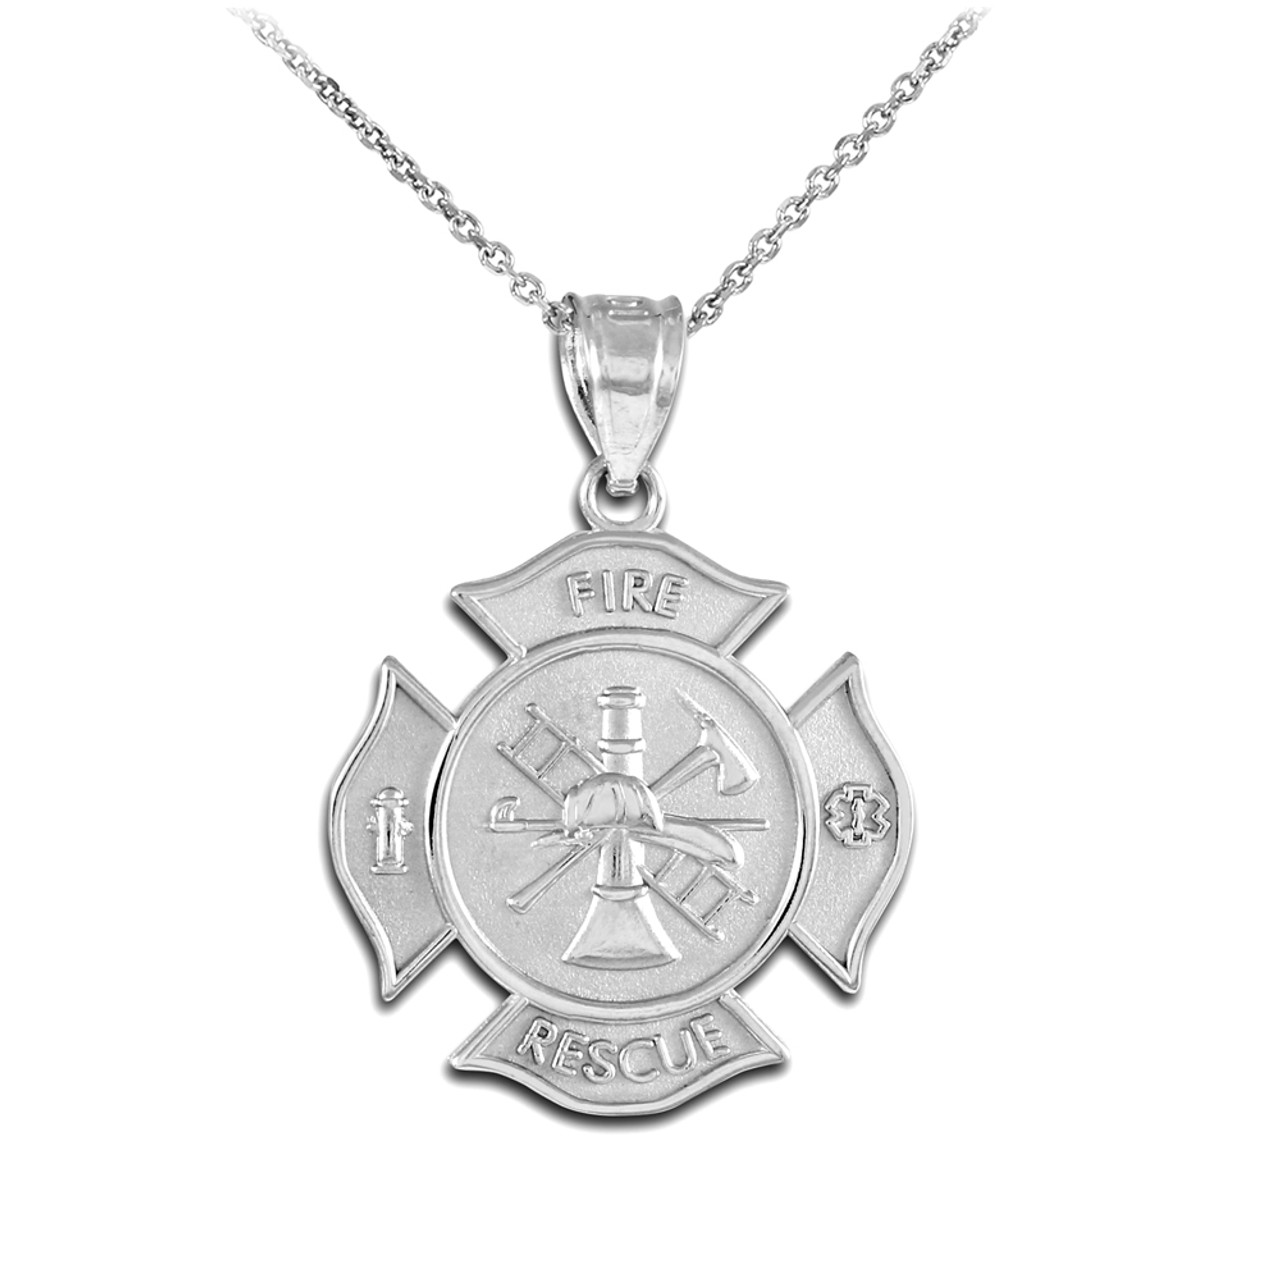 designs department david tiny size necklace daffer daviddafferdesigns fire maltese pin sterling pendant cross firefighter silver